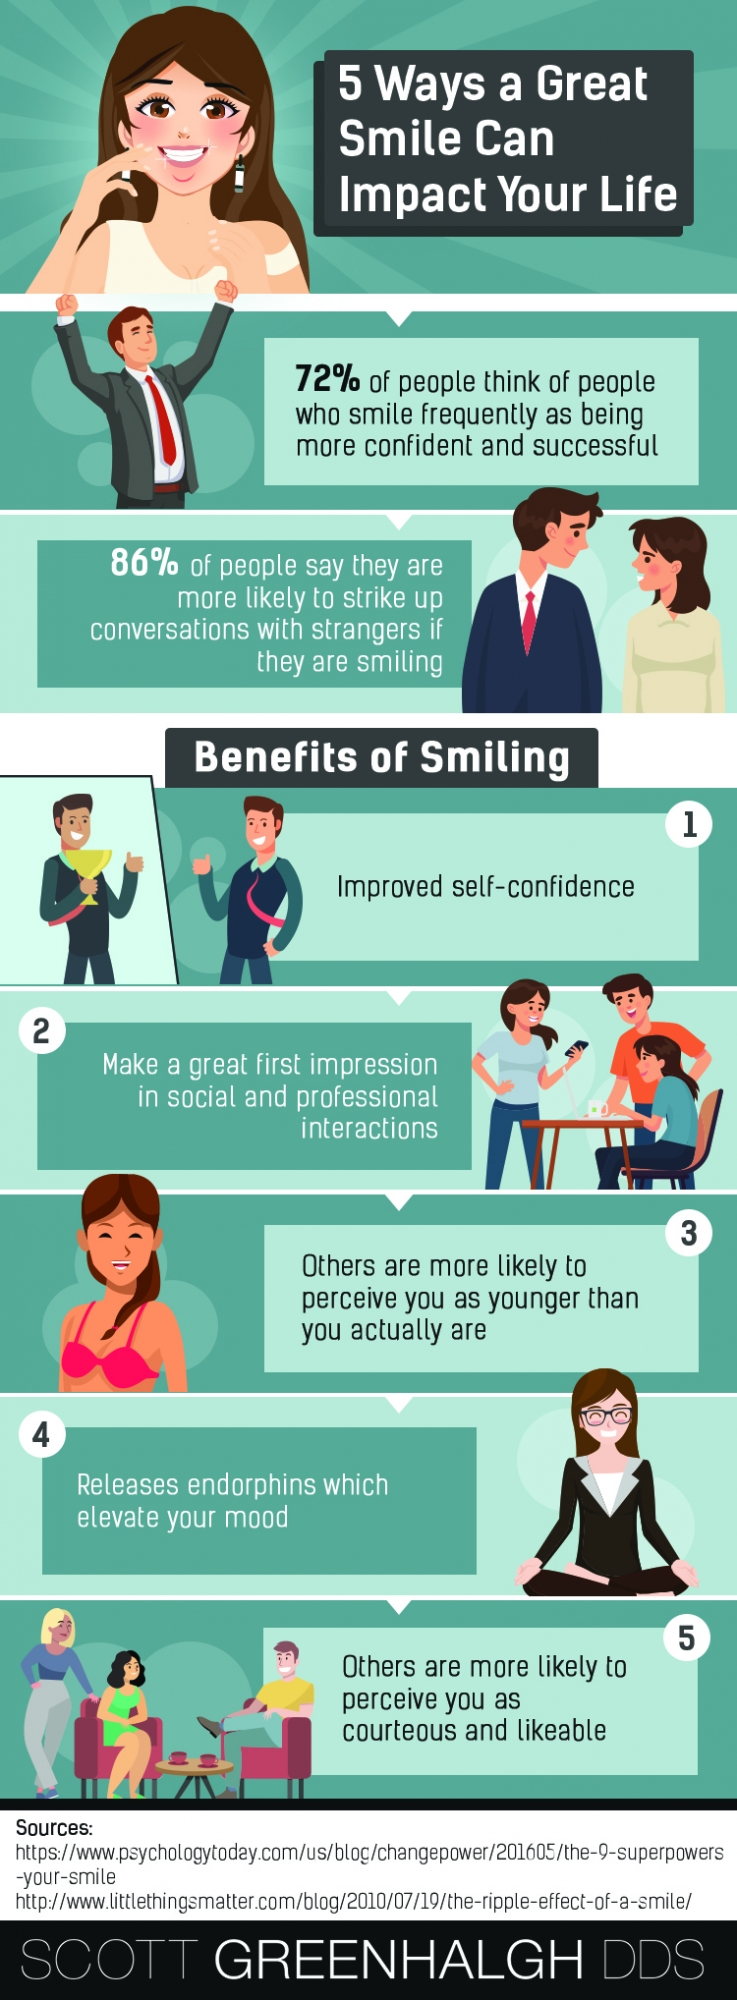 infographic discussing 5 ways a great smile can impact your life